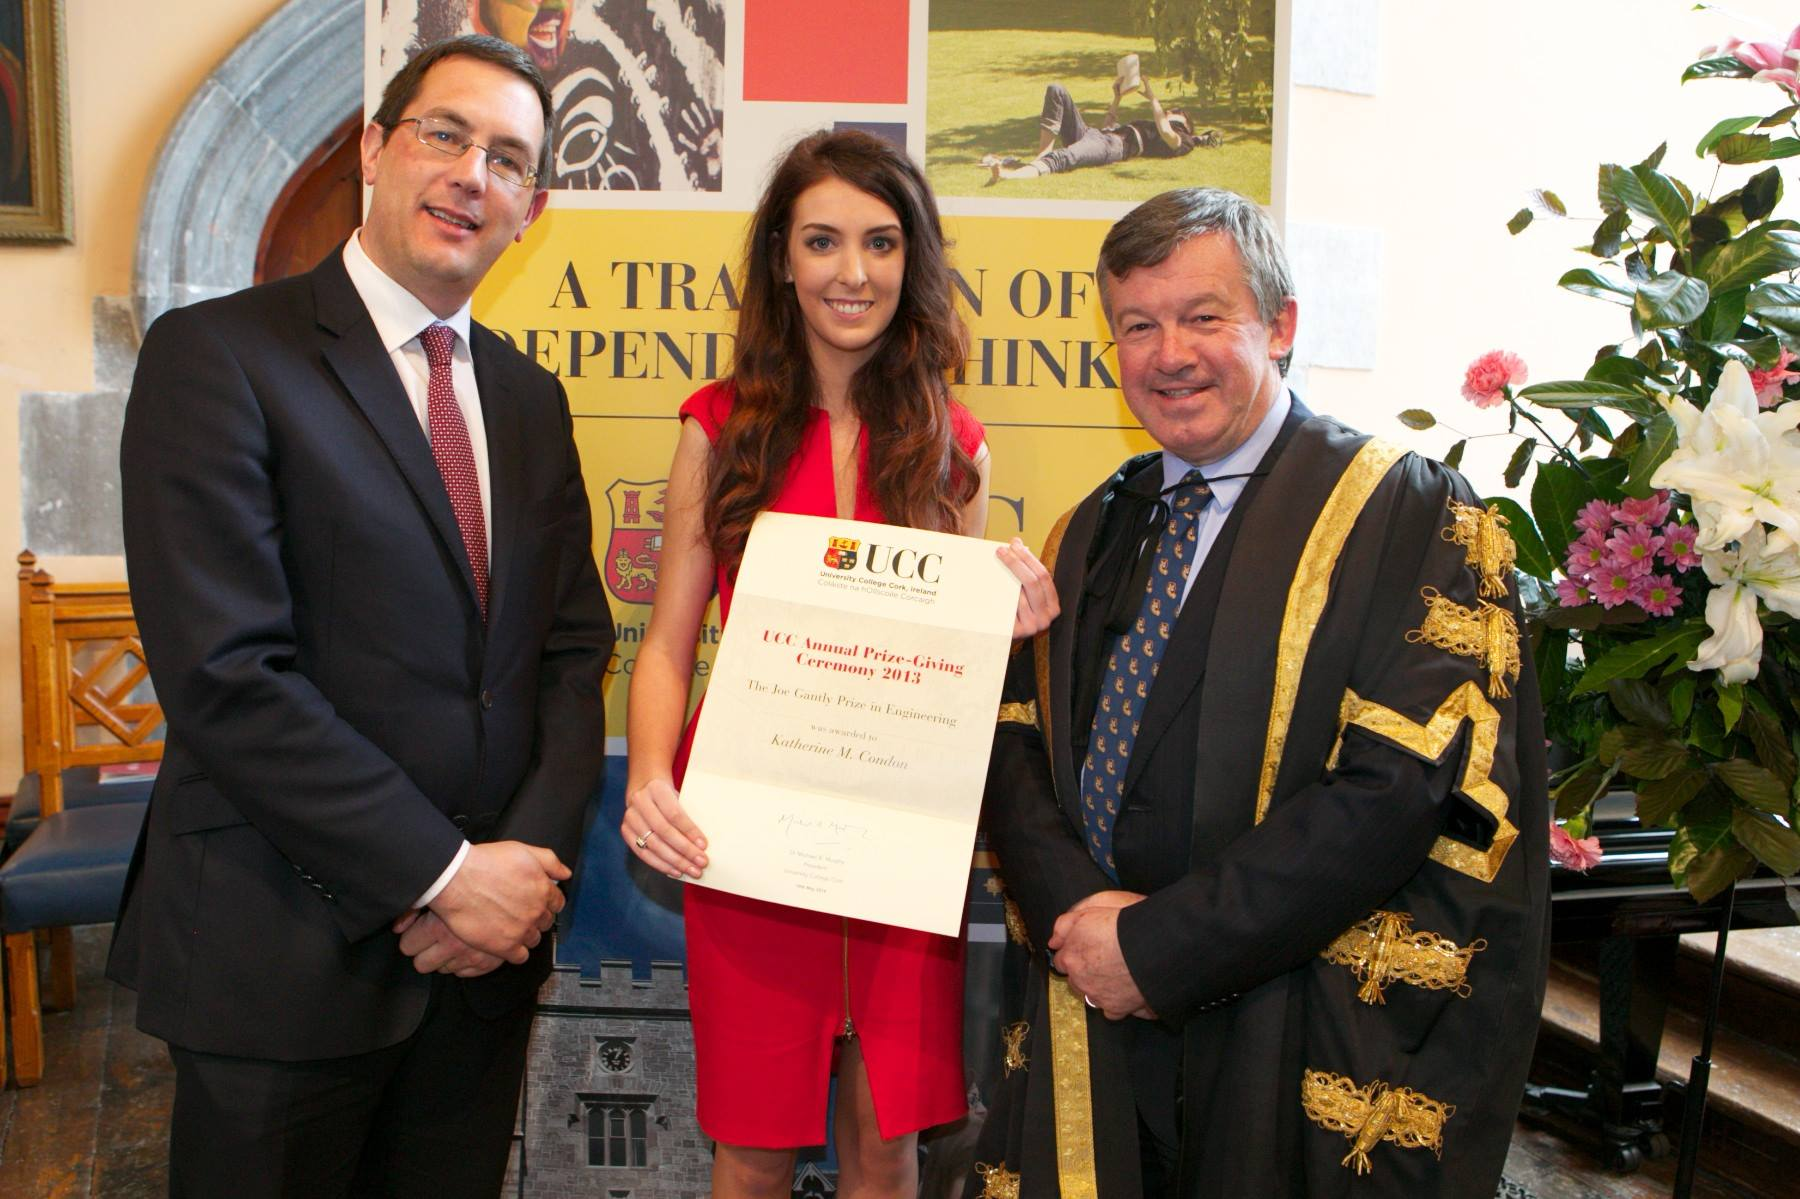 Katherine Condon is awarded the Joe Gantly Prize for Engineering at the UCC Annual Prize Giving 2014